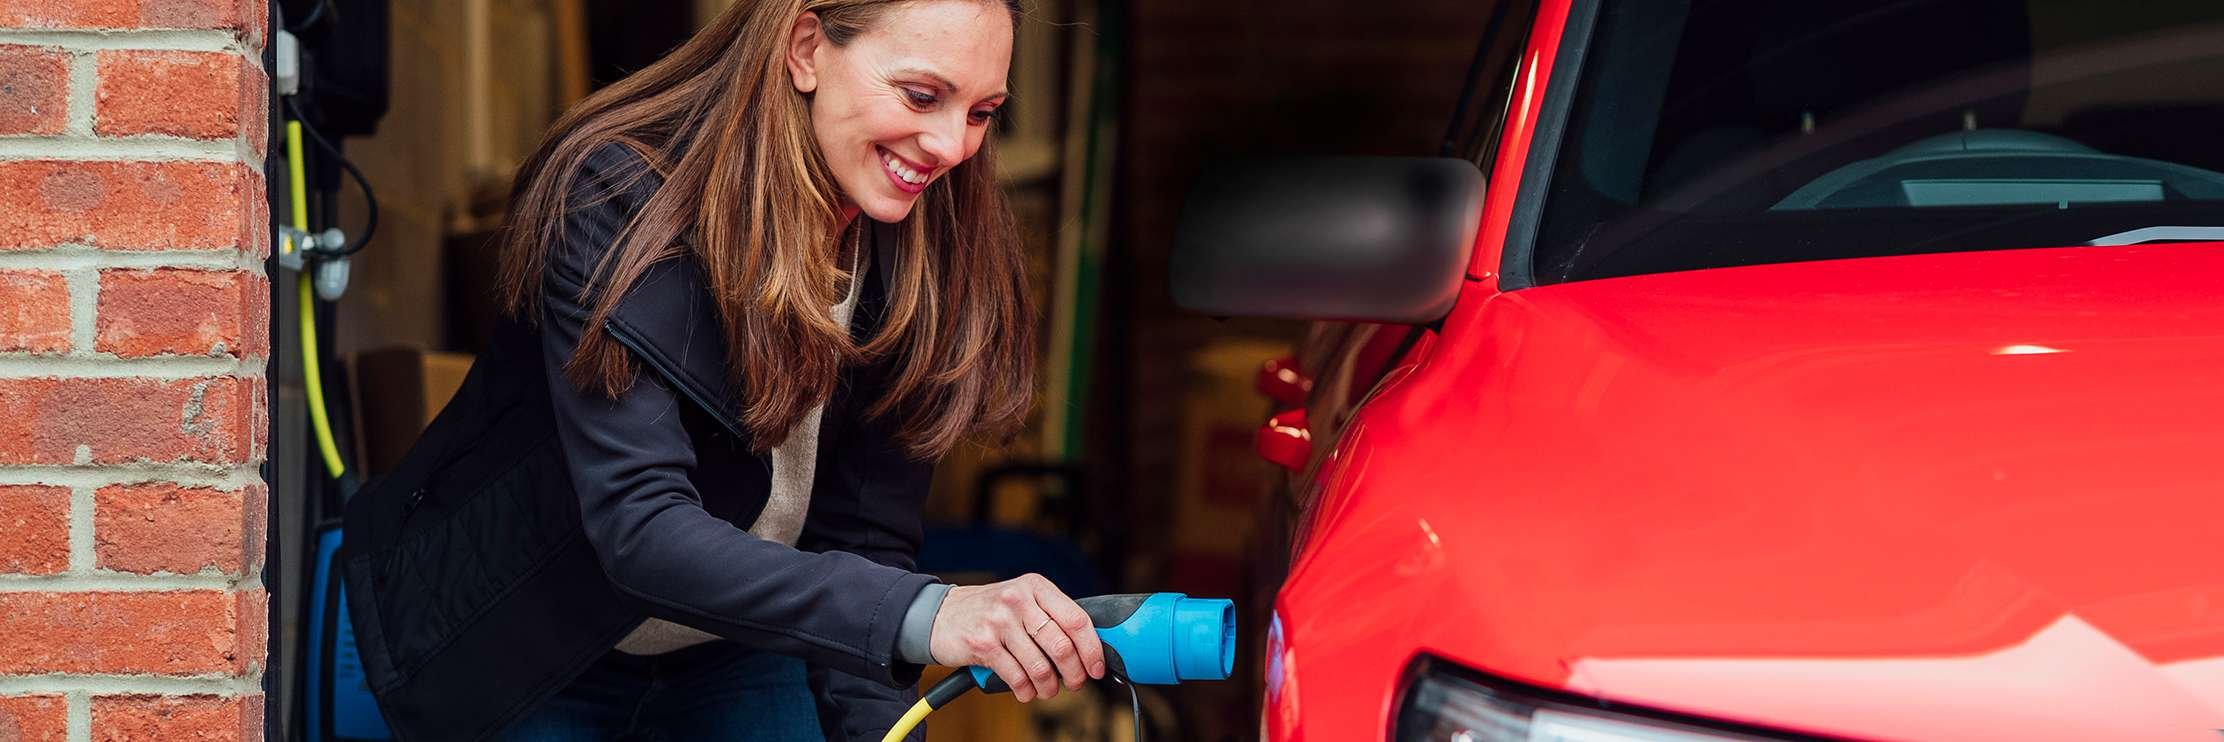 Woman charging a red EV at home in her garage.